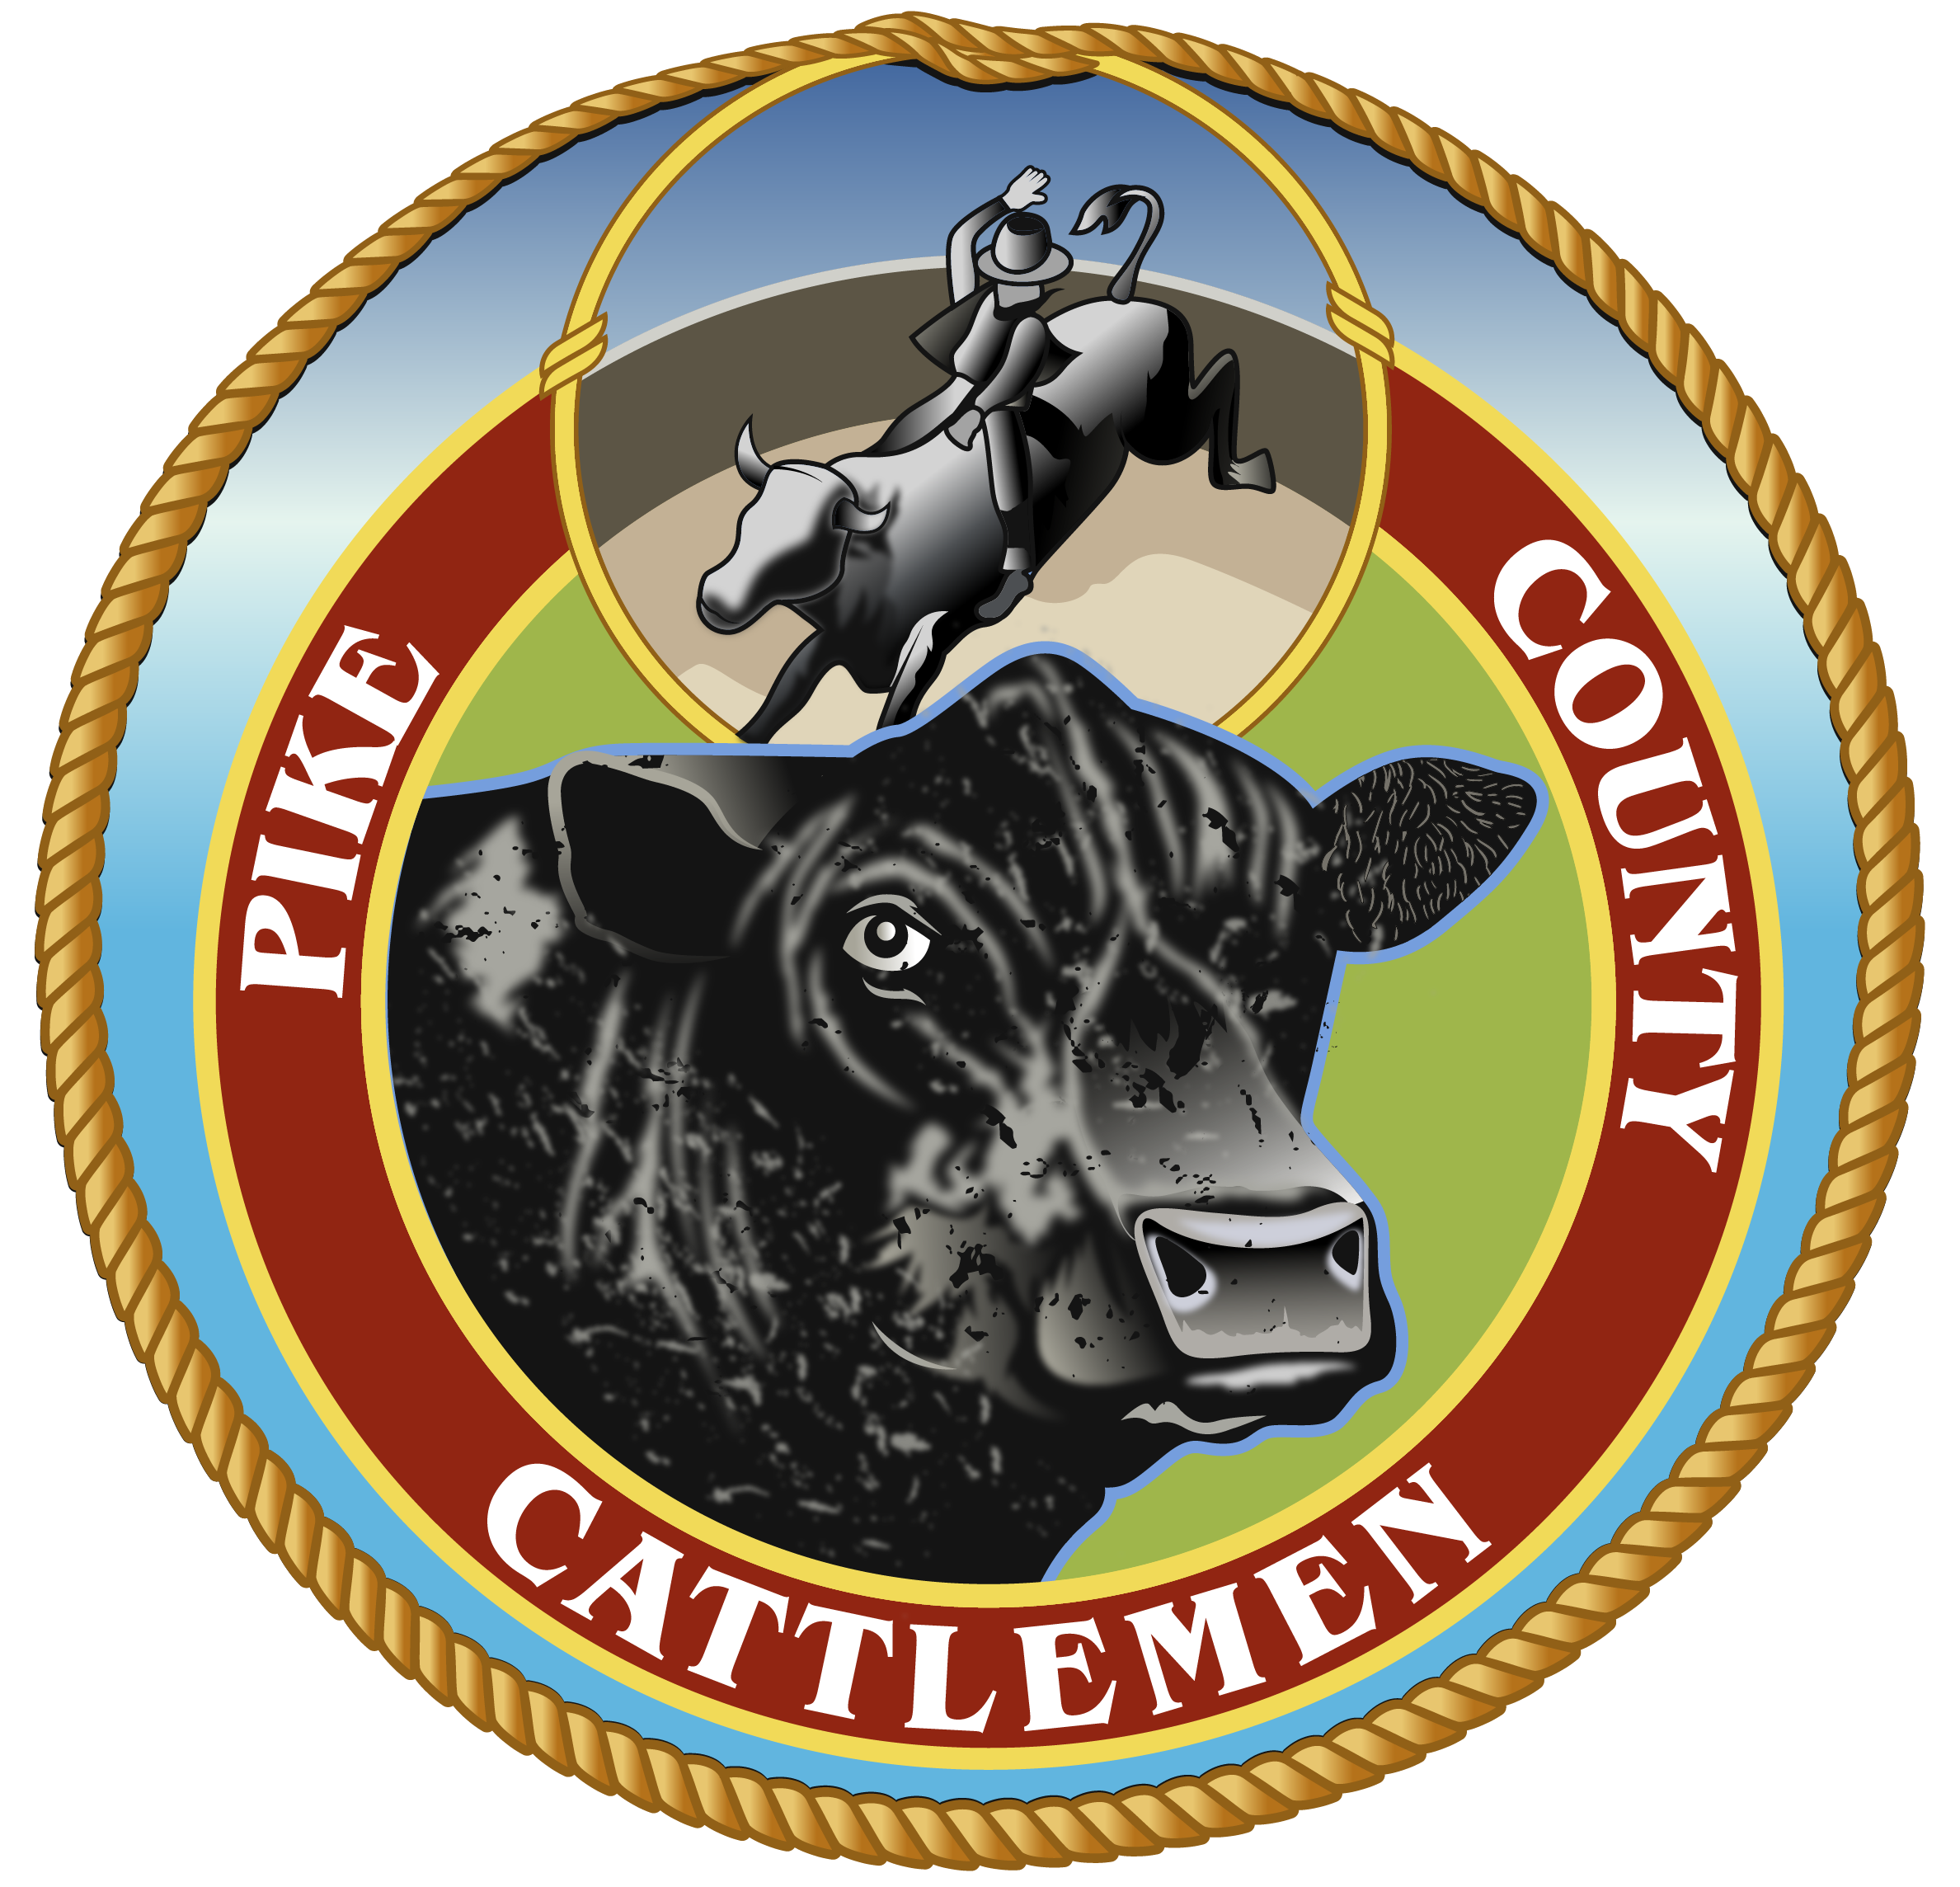 Pike County Cattlemen's Association